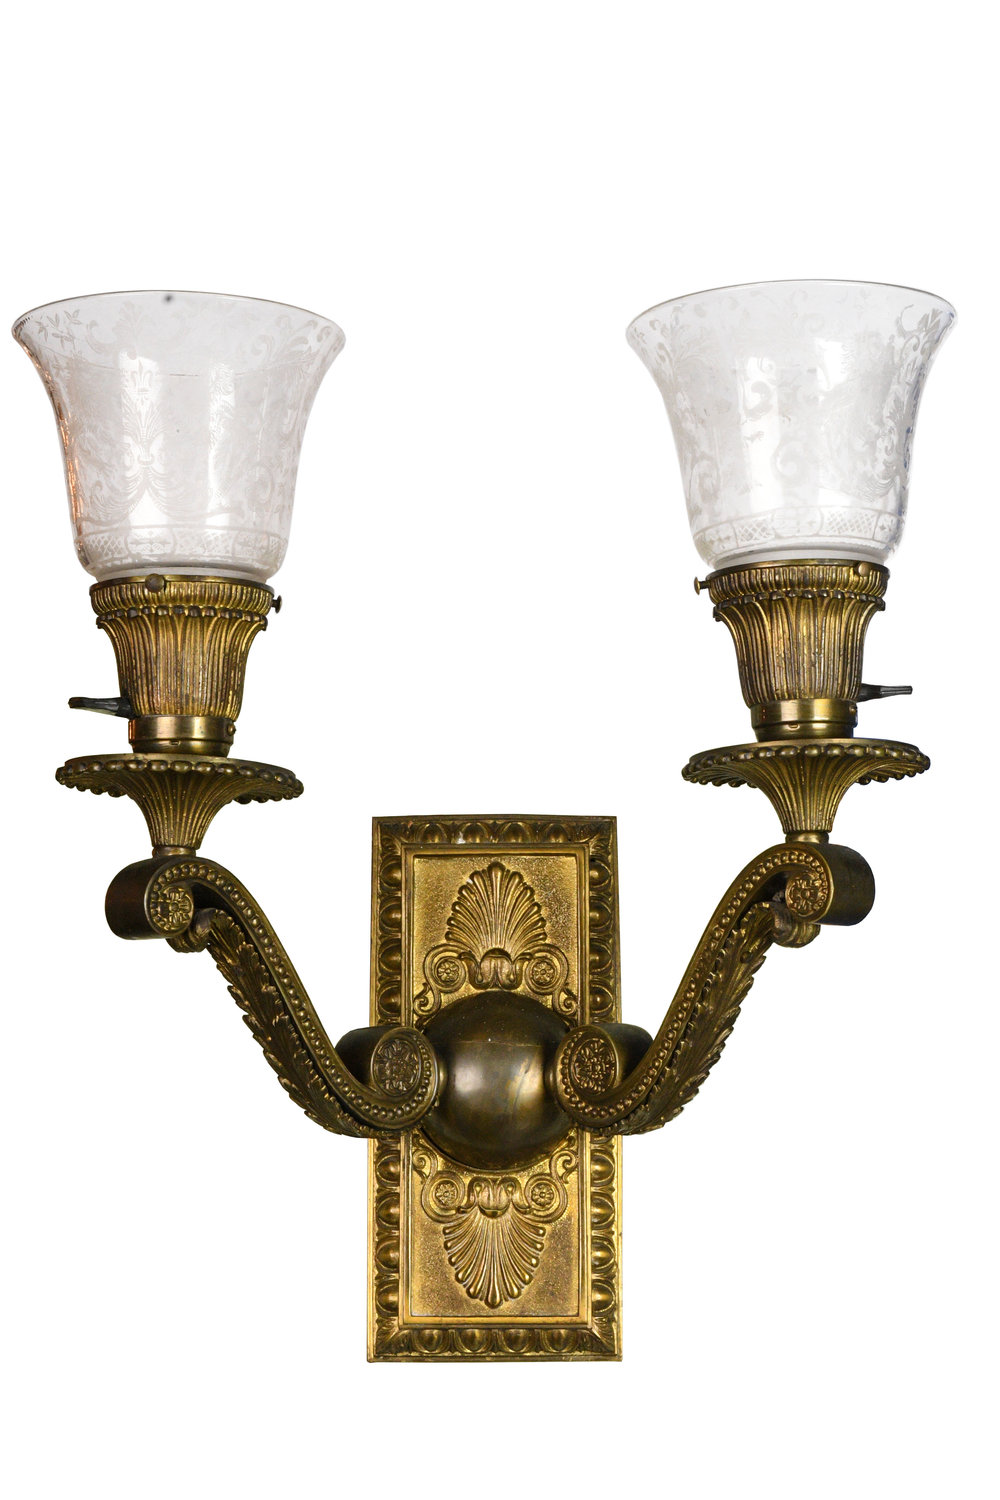 47898 brass two arm sconce_main.jpg